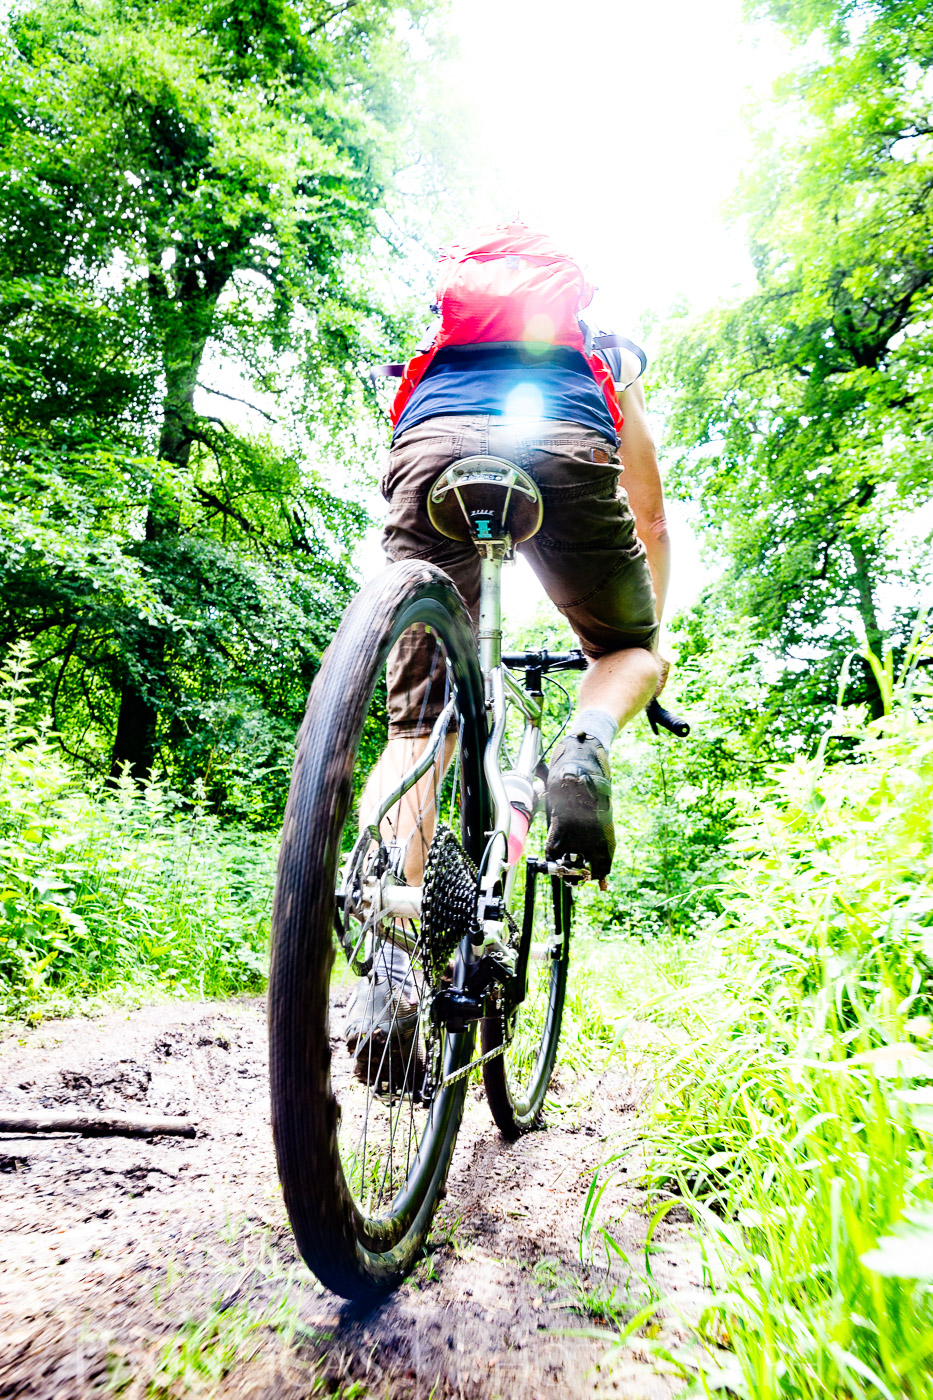 Cycling sports photographer herefordshire 8550